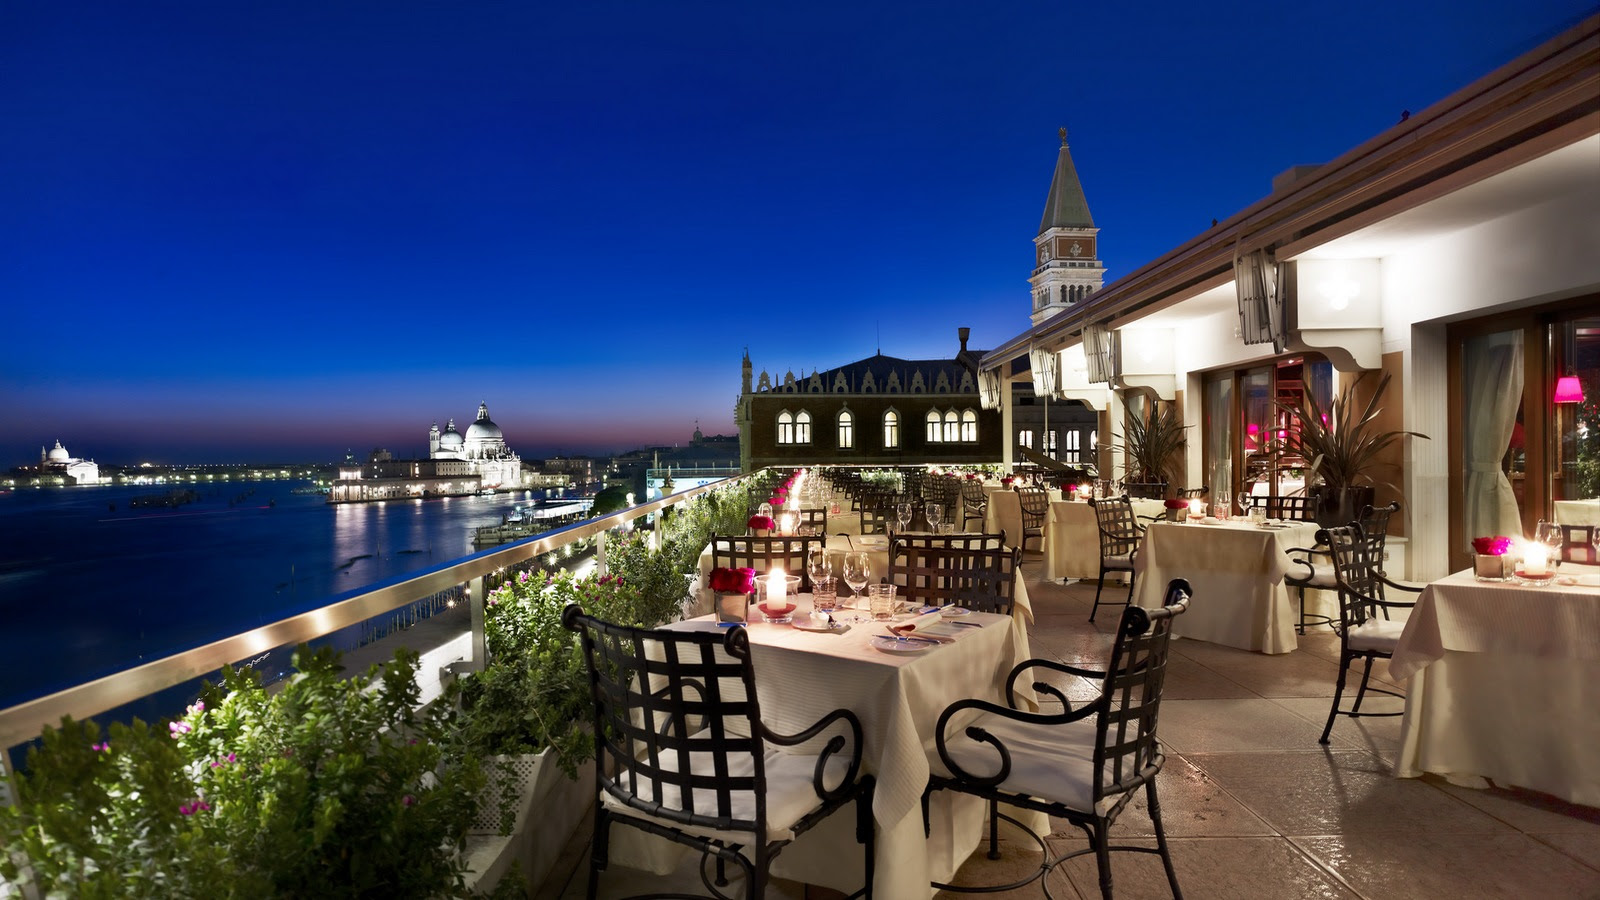 Restaurant Terrazza Danieli terrace by night Venice